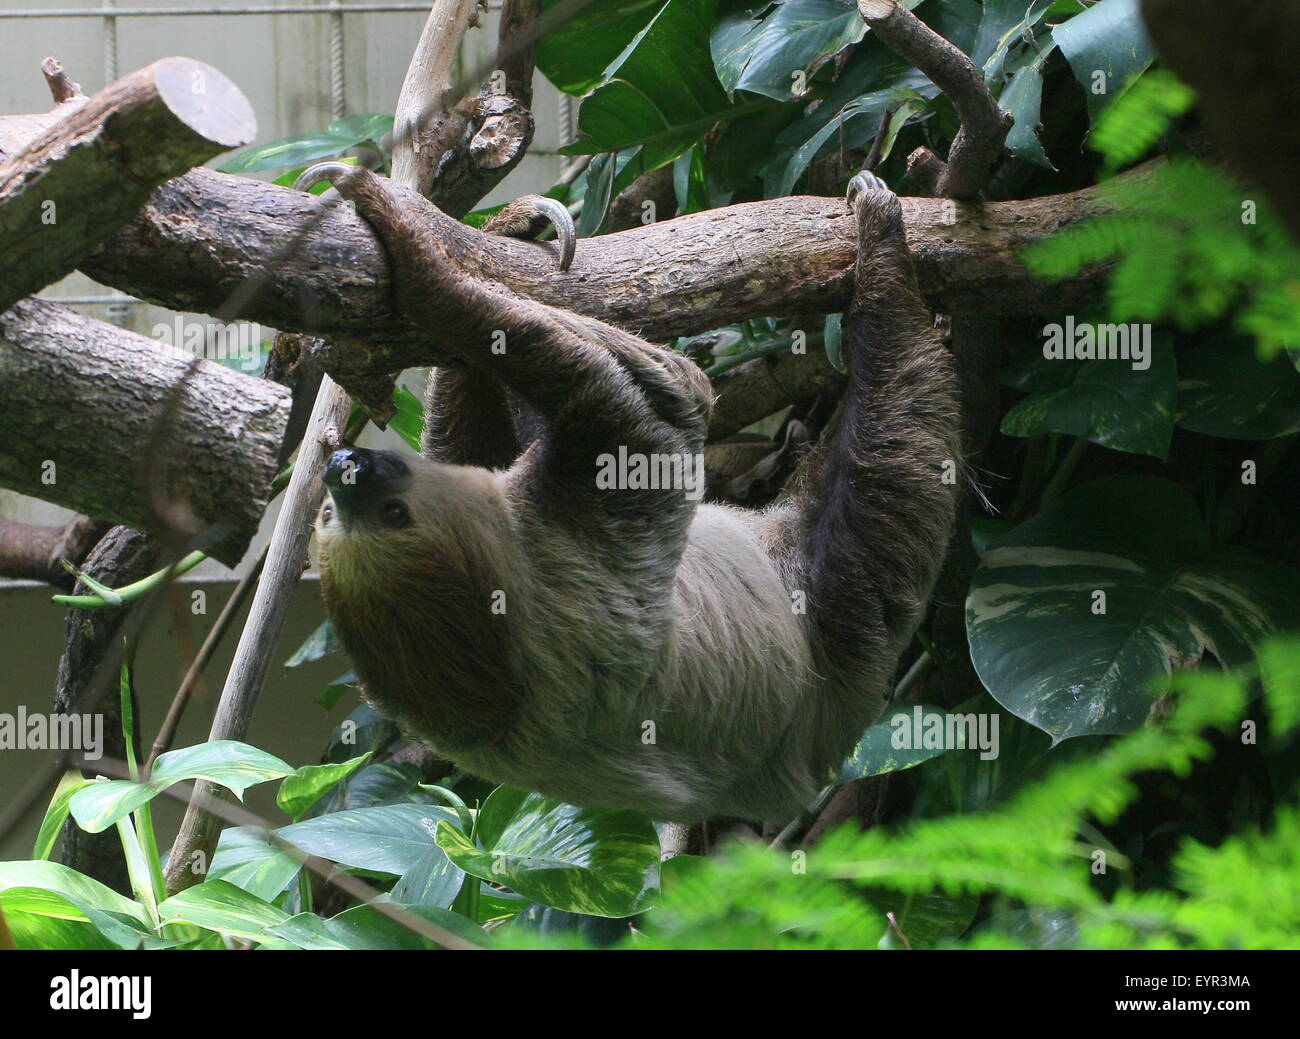 South American Linnaeus's two toed sloth or Southern two-toed sloth (Choloepus didactylus) at Dierenpark Emmen Zoo, Netherlands Stock Photo